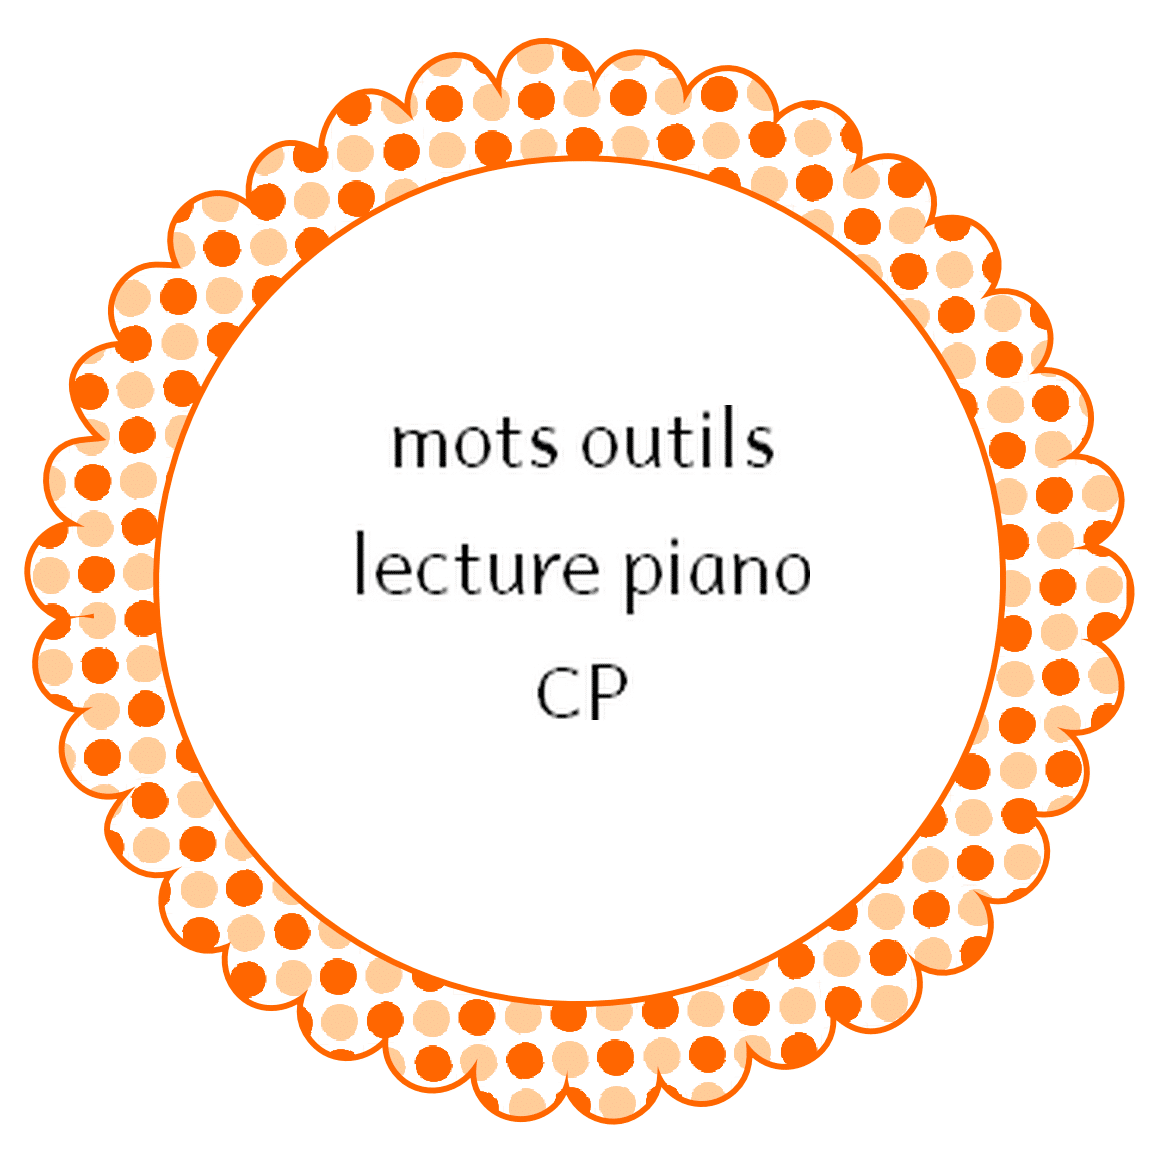 mots outils – lecture piano – CP